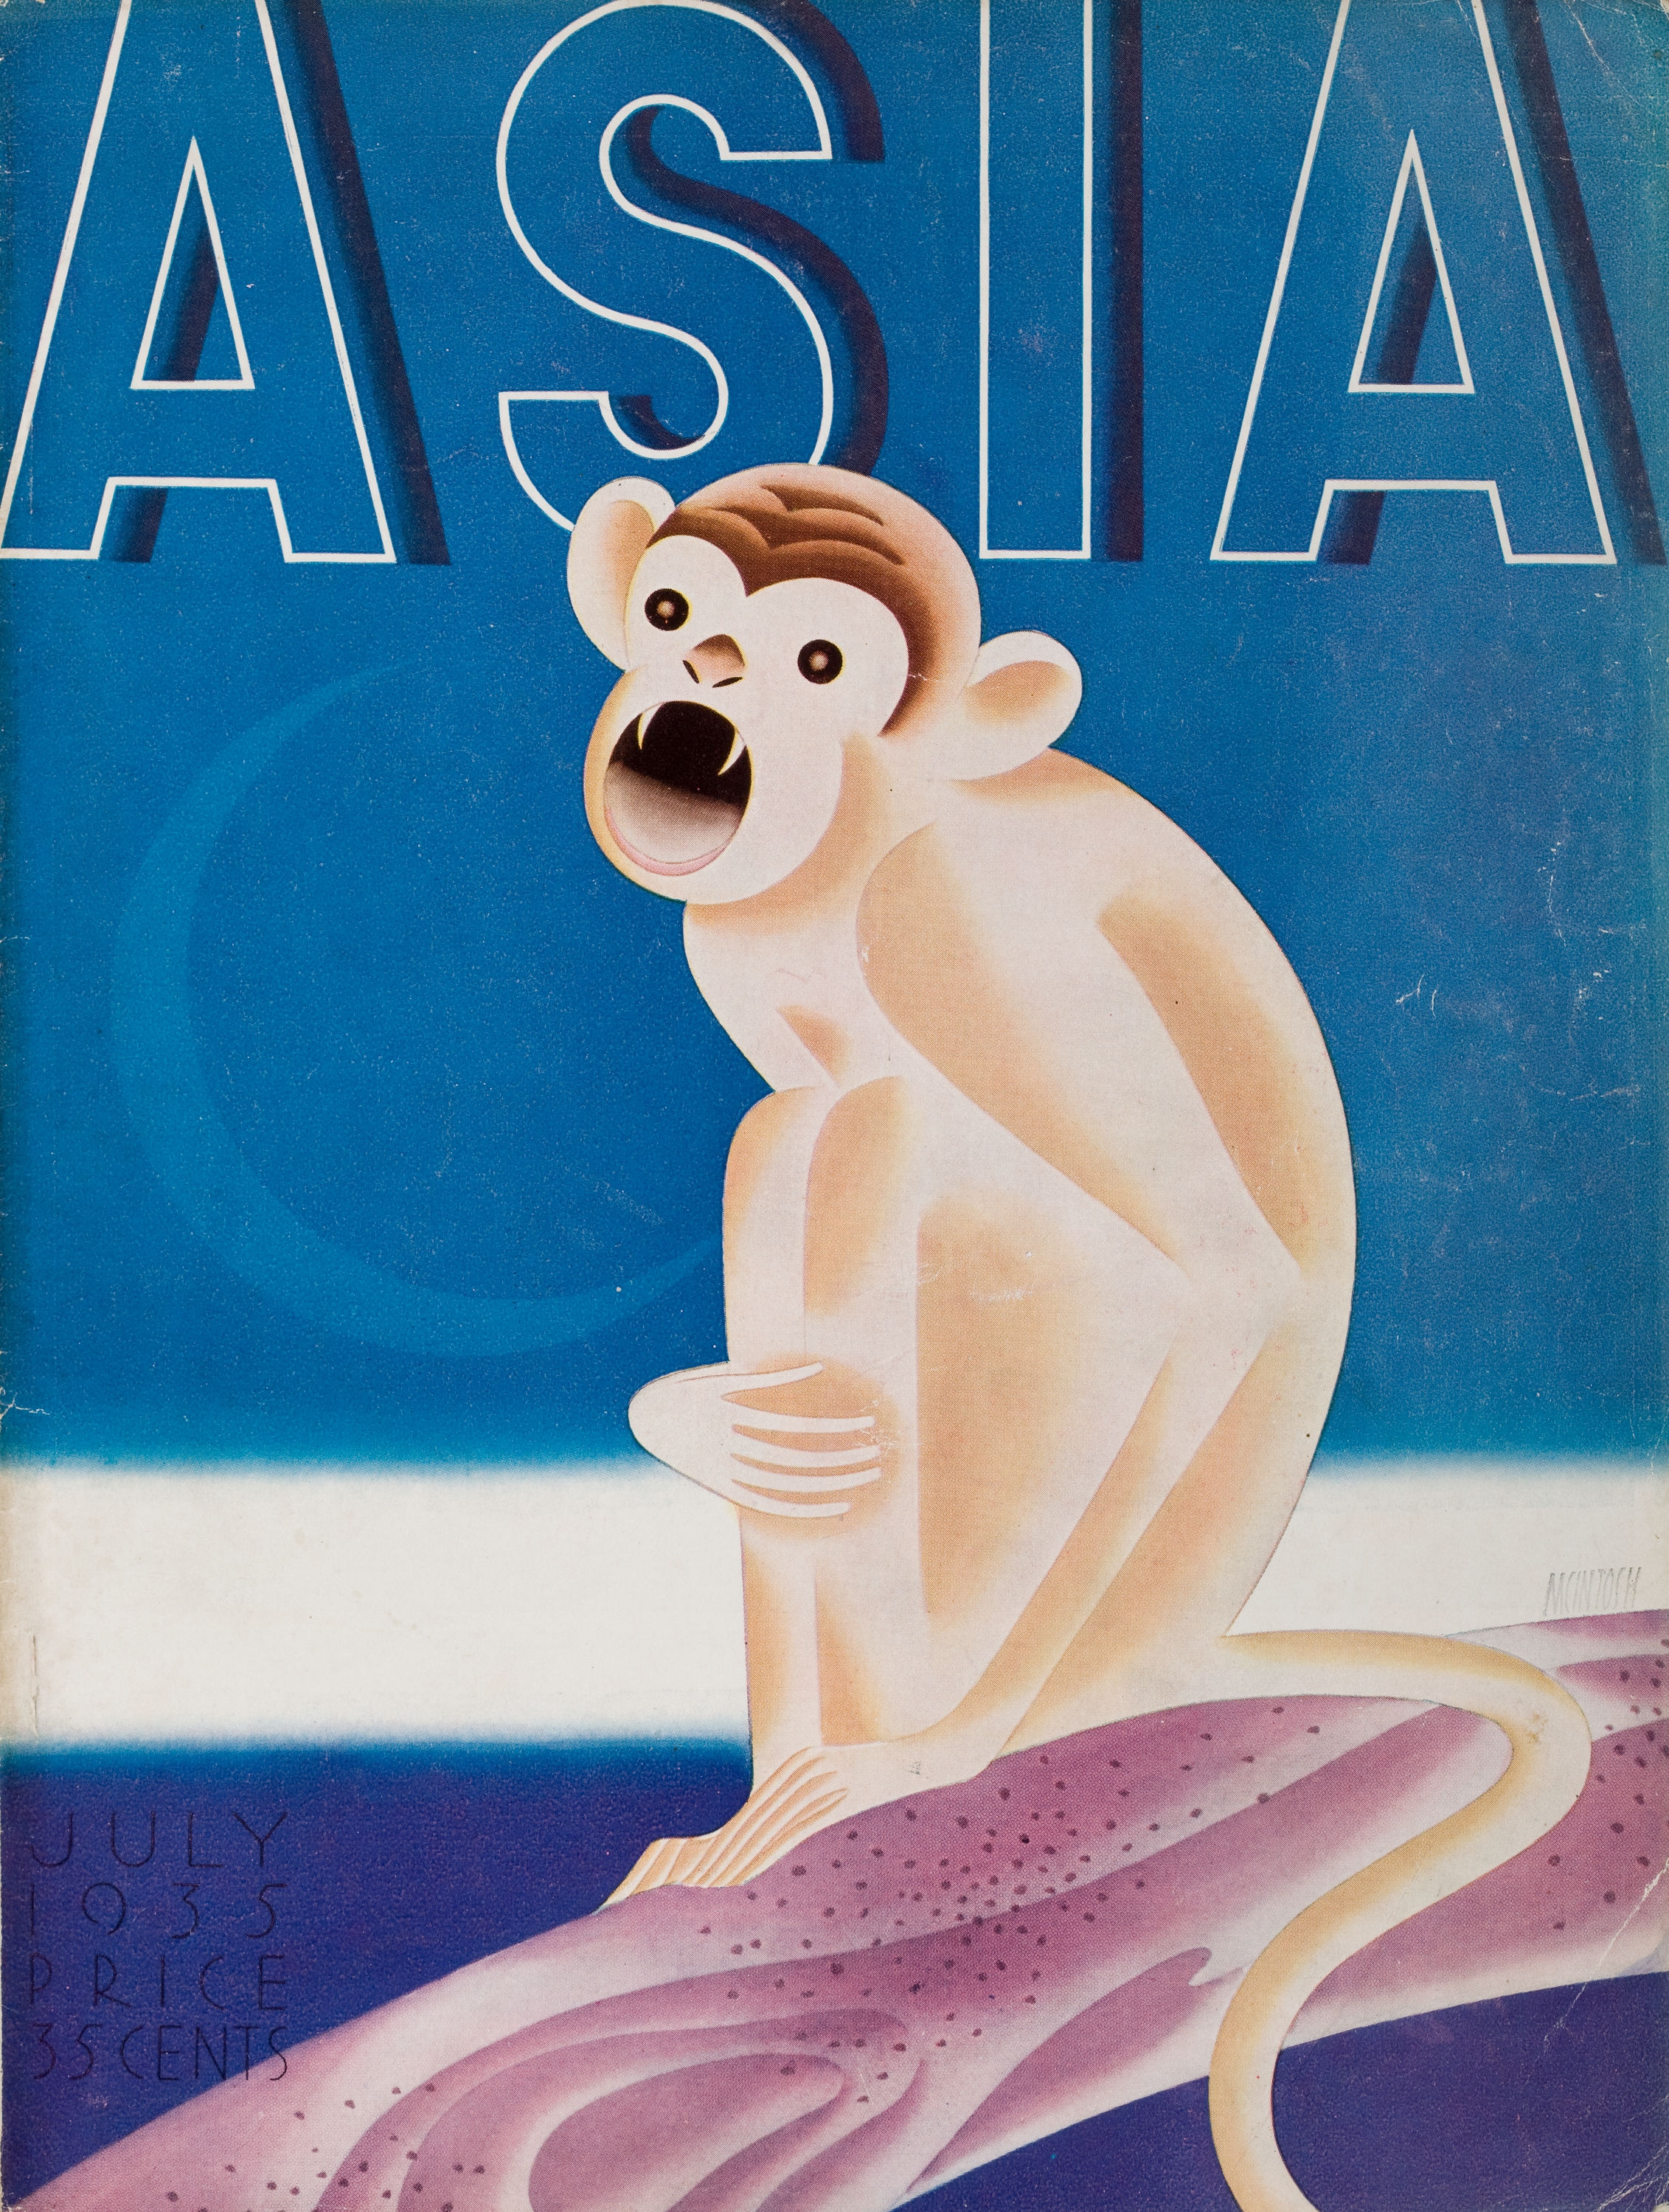 FRANK MCINTOSH (American, b. 1901). Asia magazine cover , July 1935. Watercolor and gouache on board.